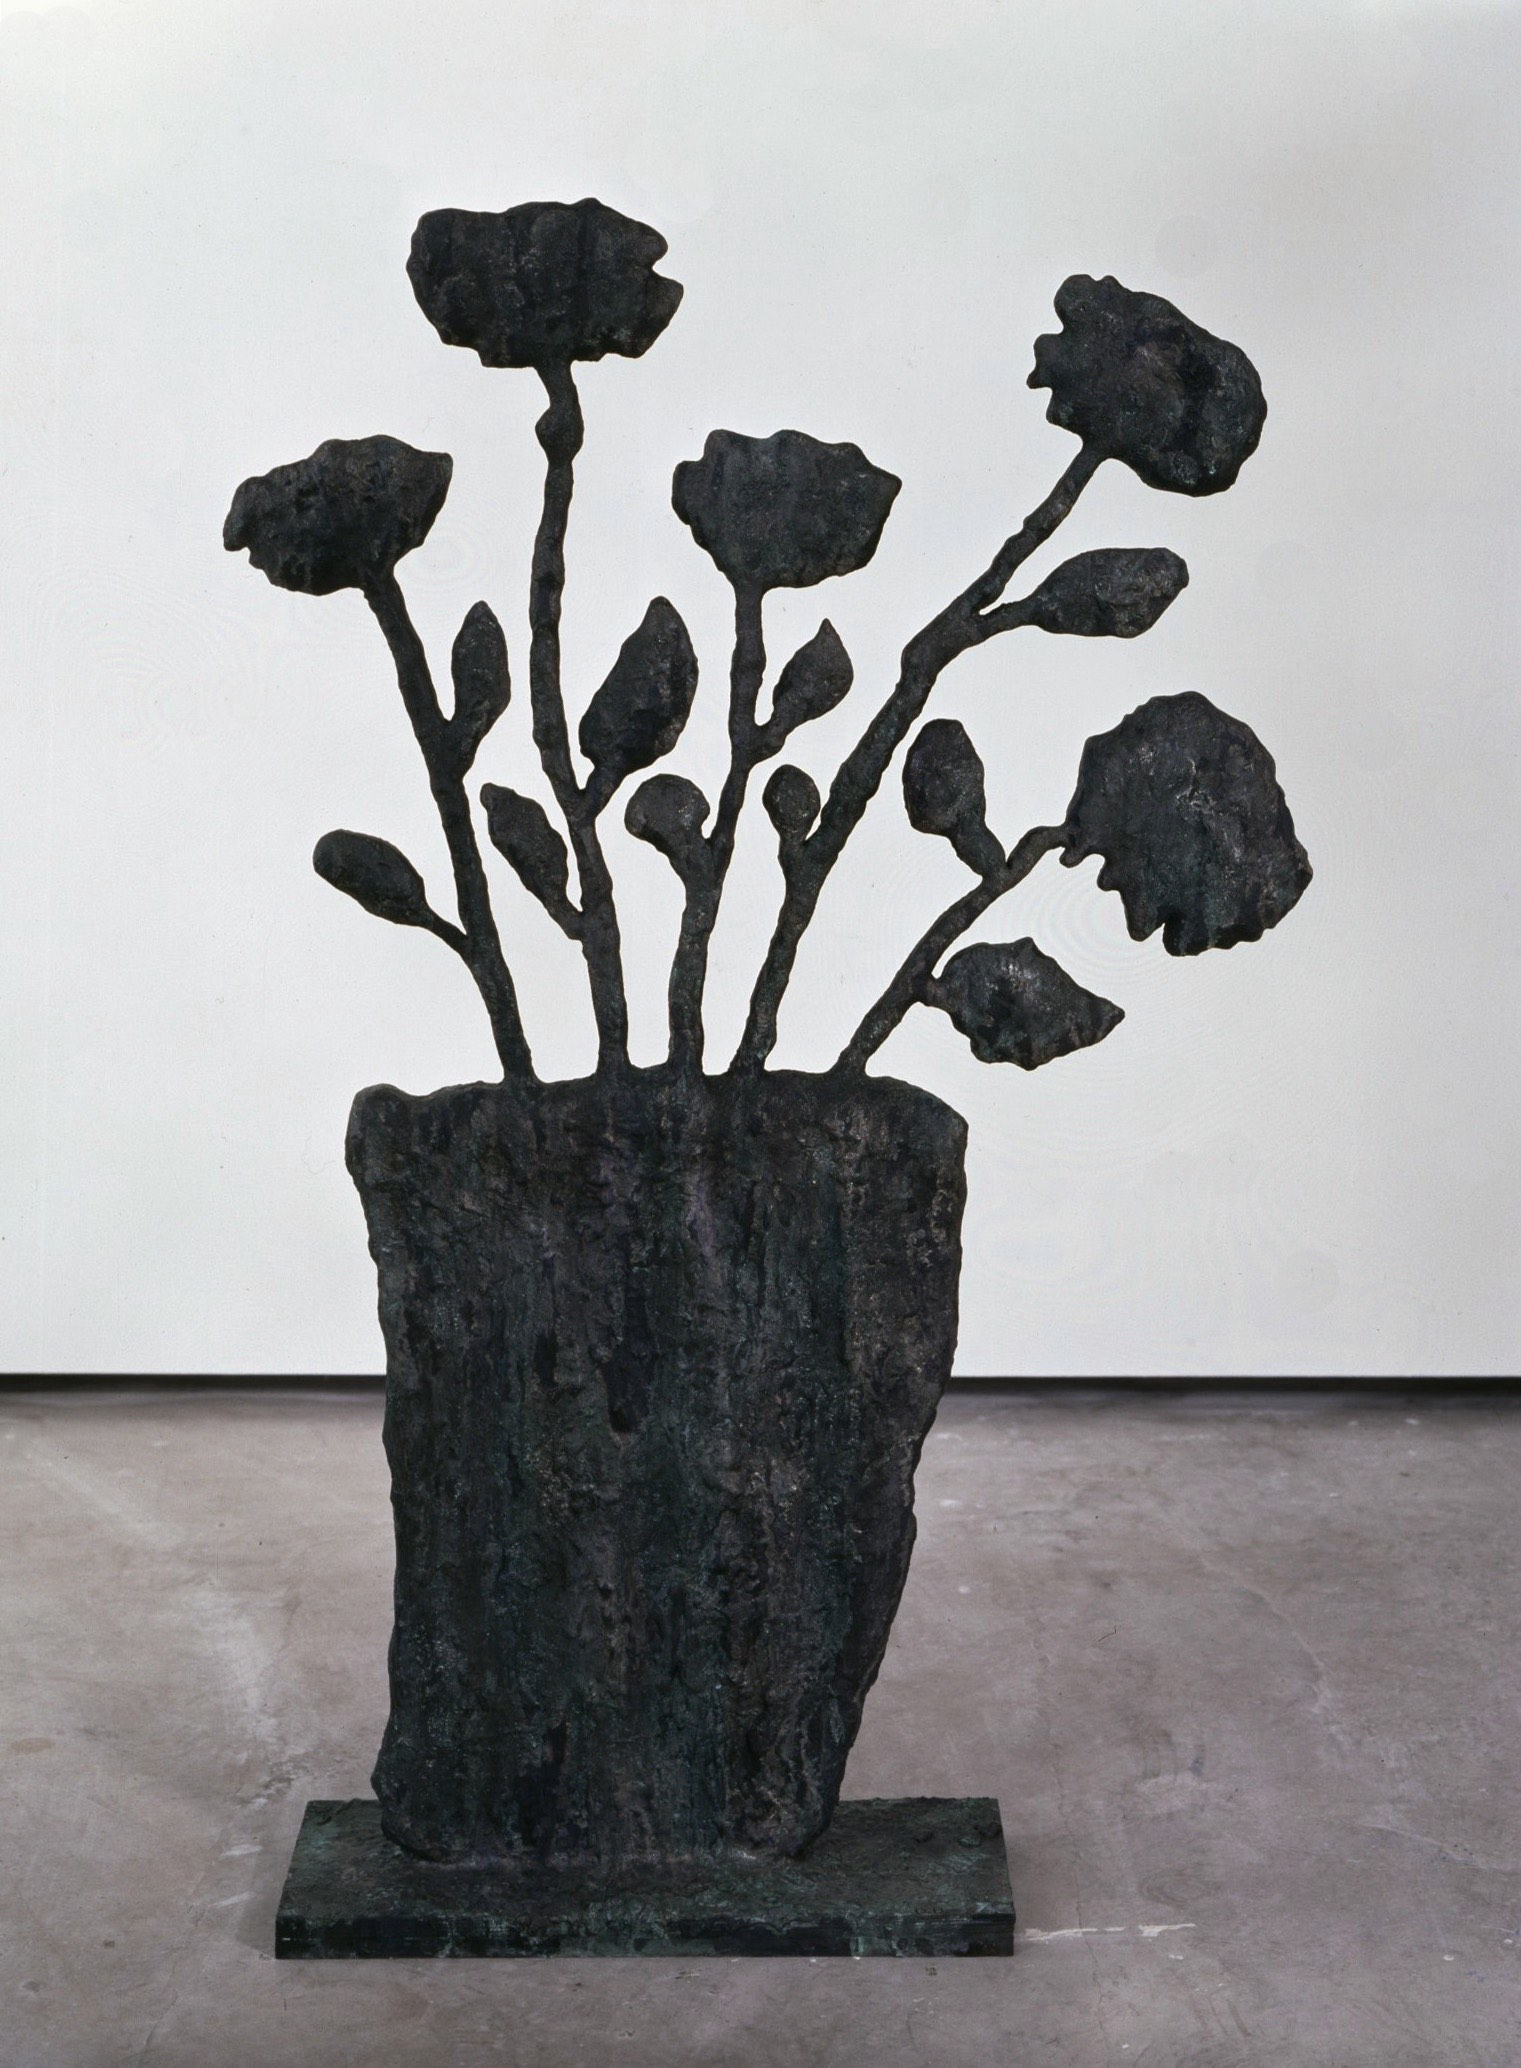 Donald Baechler   Untitled (Flowers)   2003-04  cast bronze  61 x 40 x 10 in / 155 x 101.6 x 25 cm  Edition of 8 + 2 APs